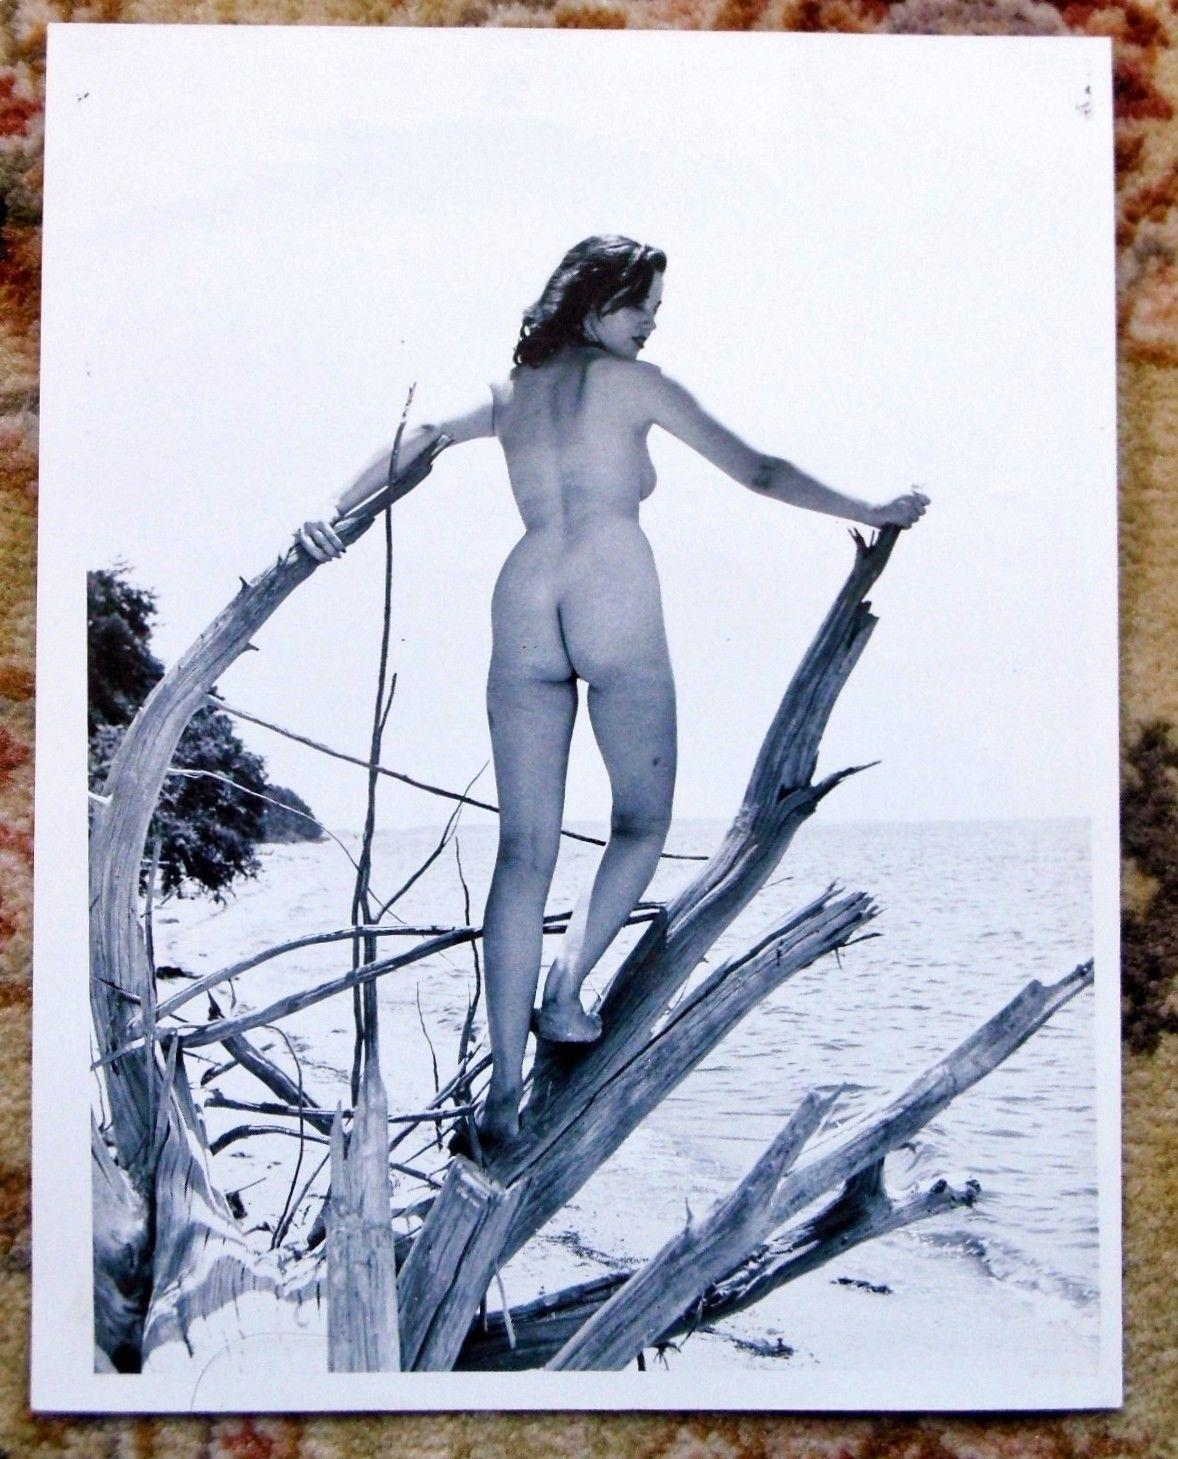 1965 ORIGINAL VINTAGE NUDE PHOTO by JACK KERNS of a YOUNG NUDIST WOMAN Artistically Posed in Nature Jack Kerns